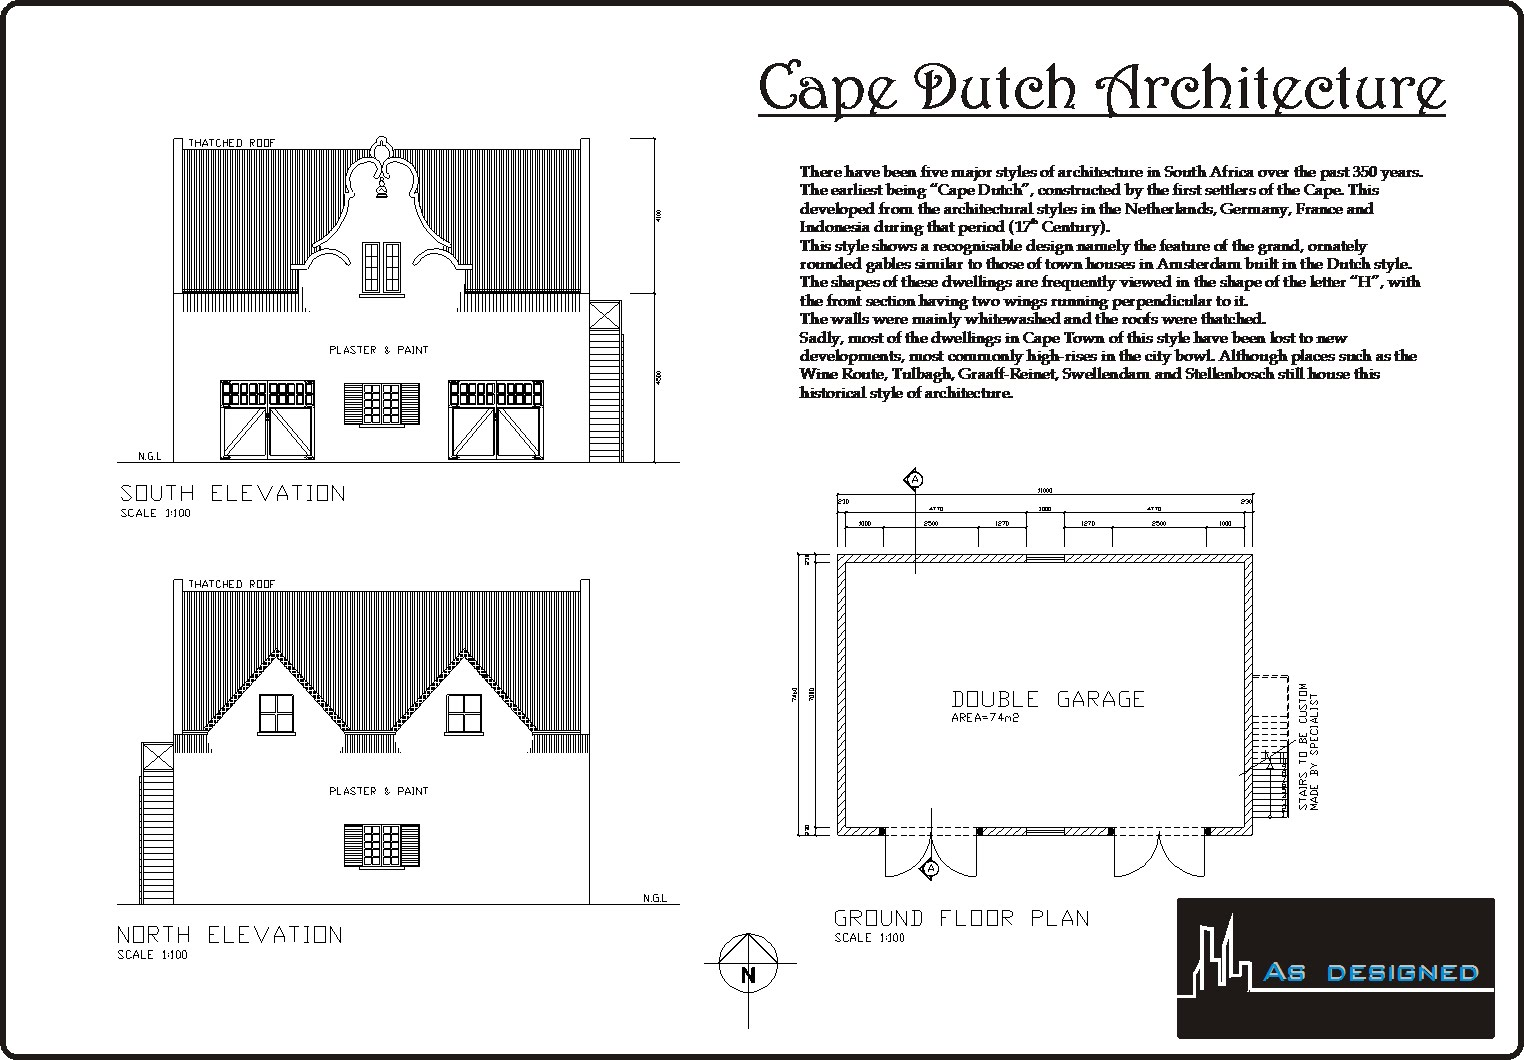 asdesigned cape dutch architecture